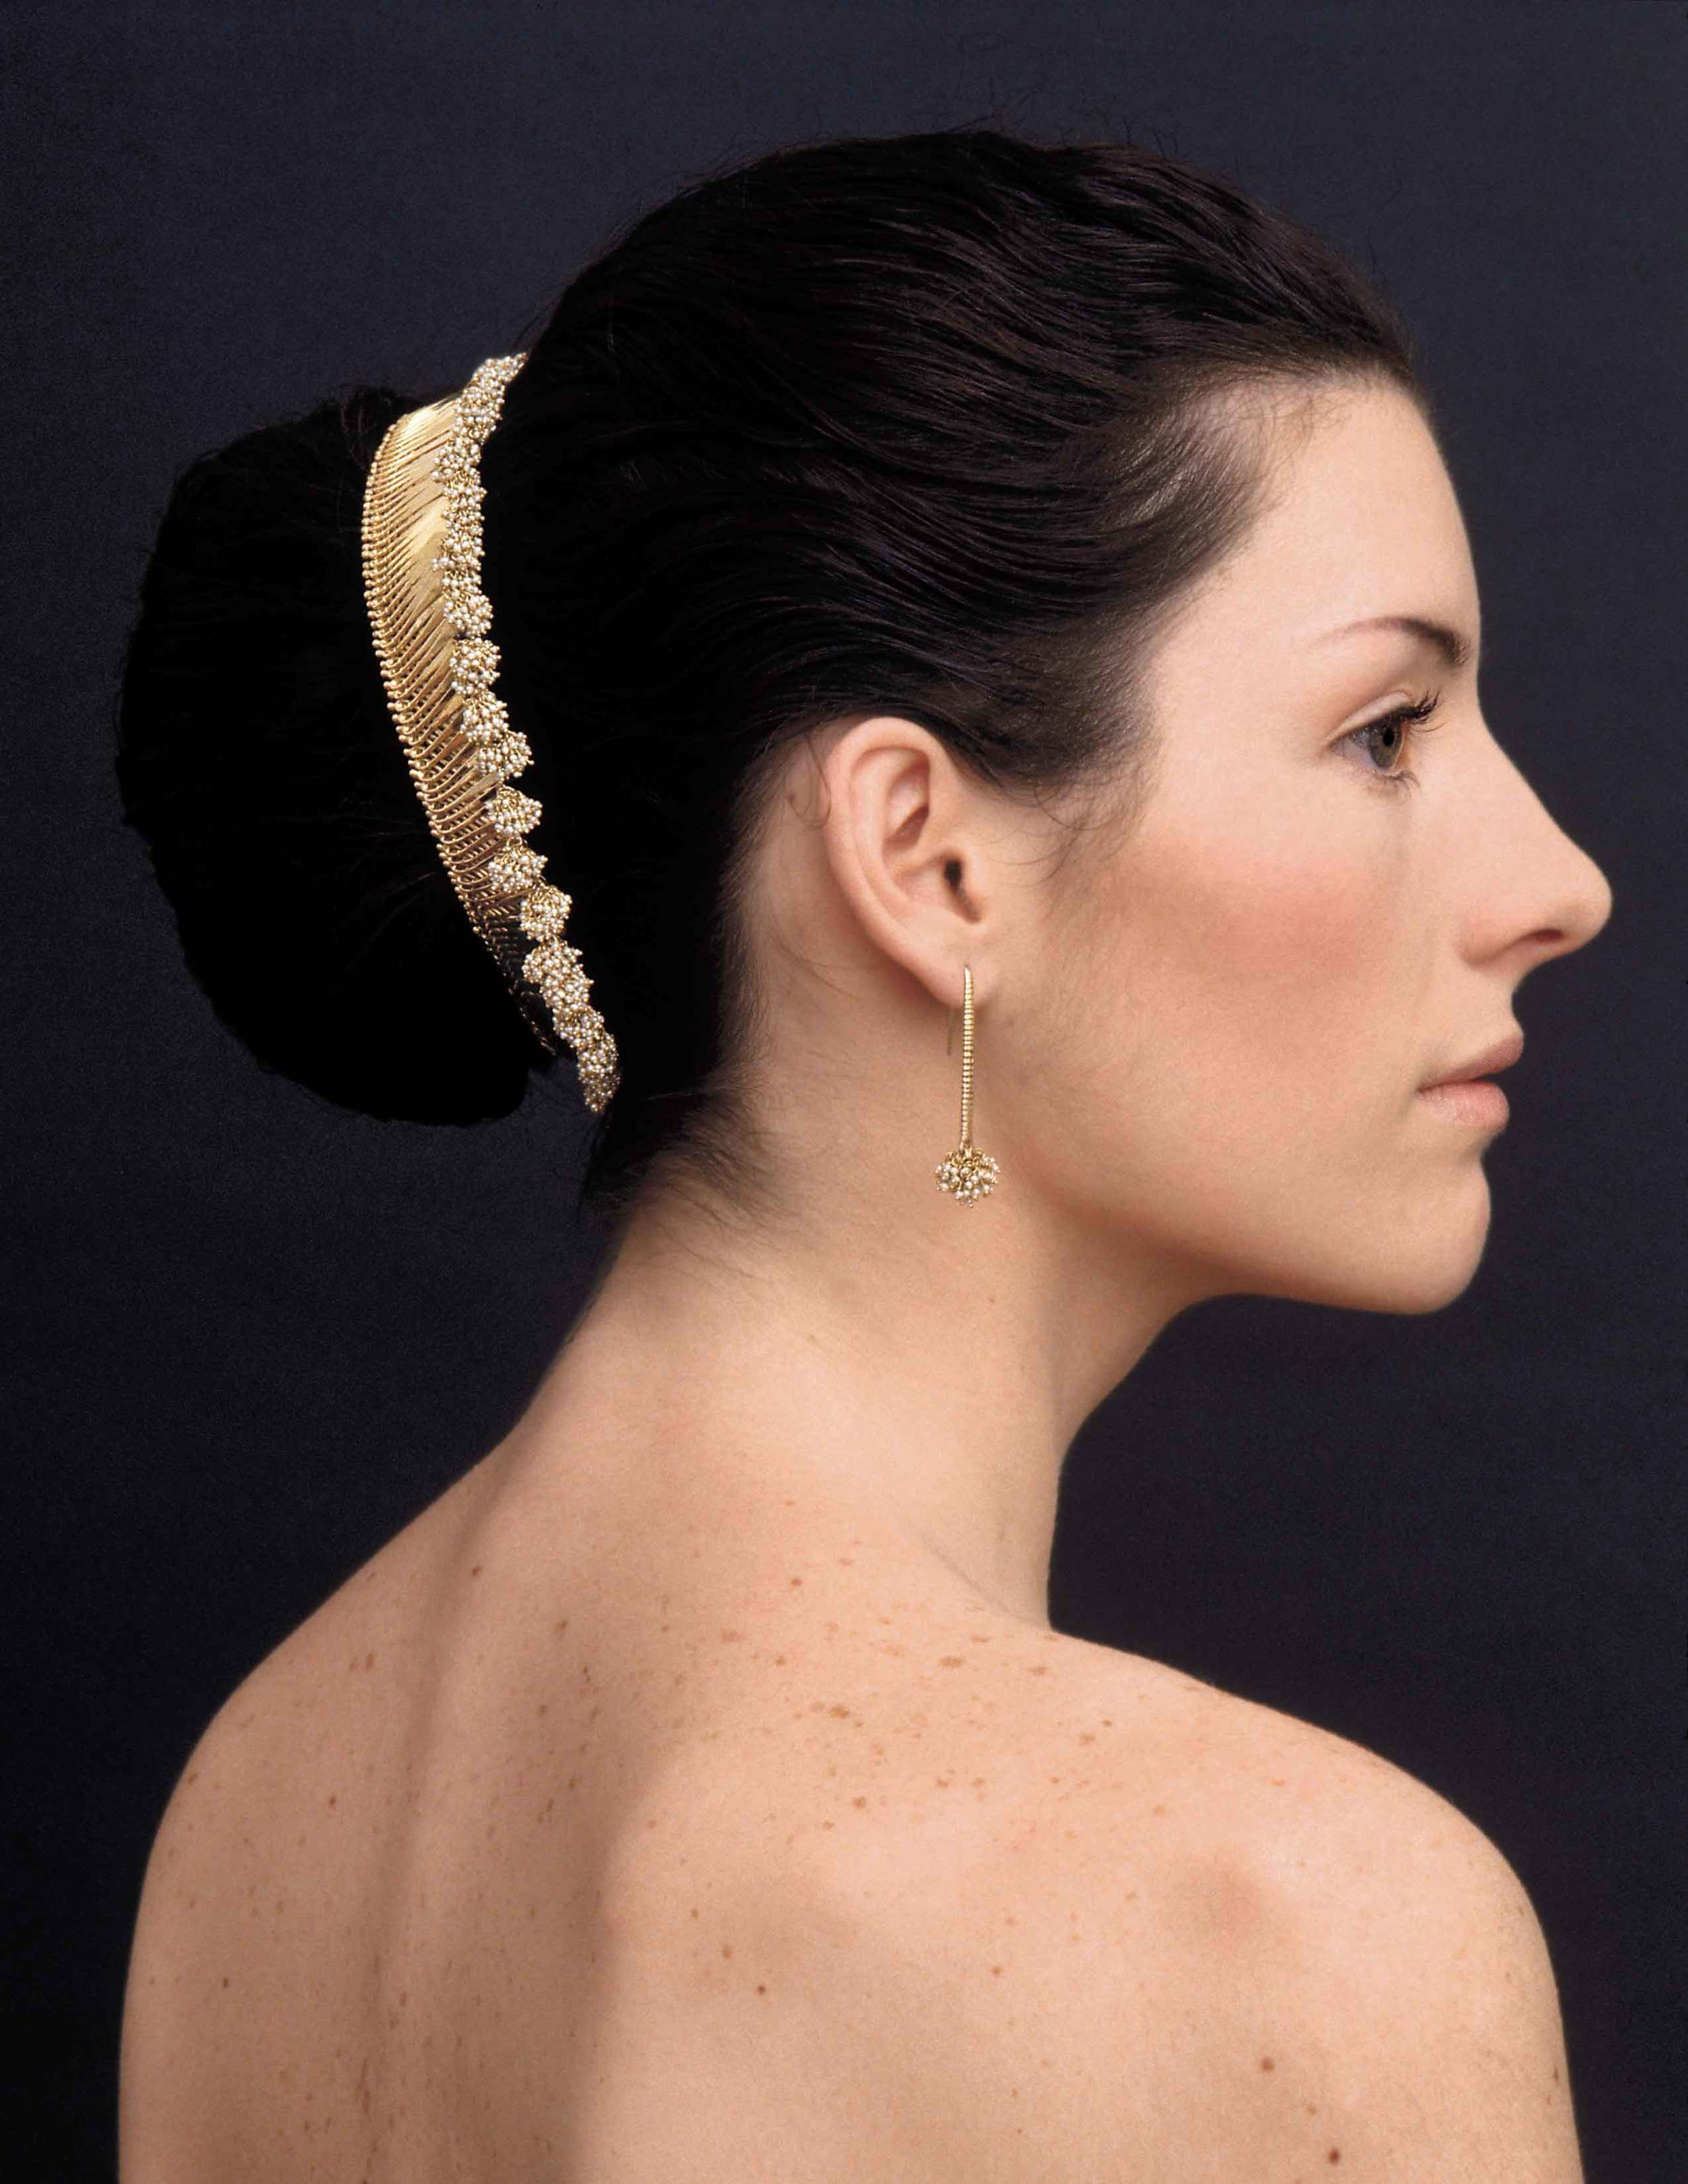 Gurmit's hair jewellery in 18k Gold and pearls